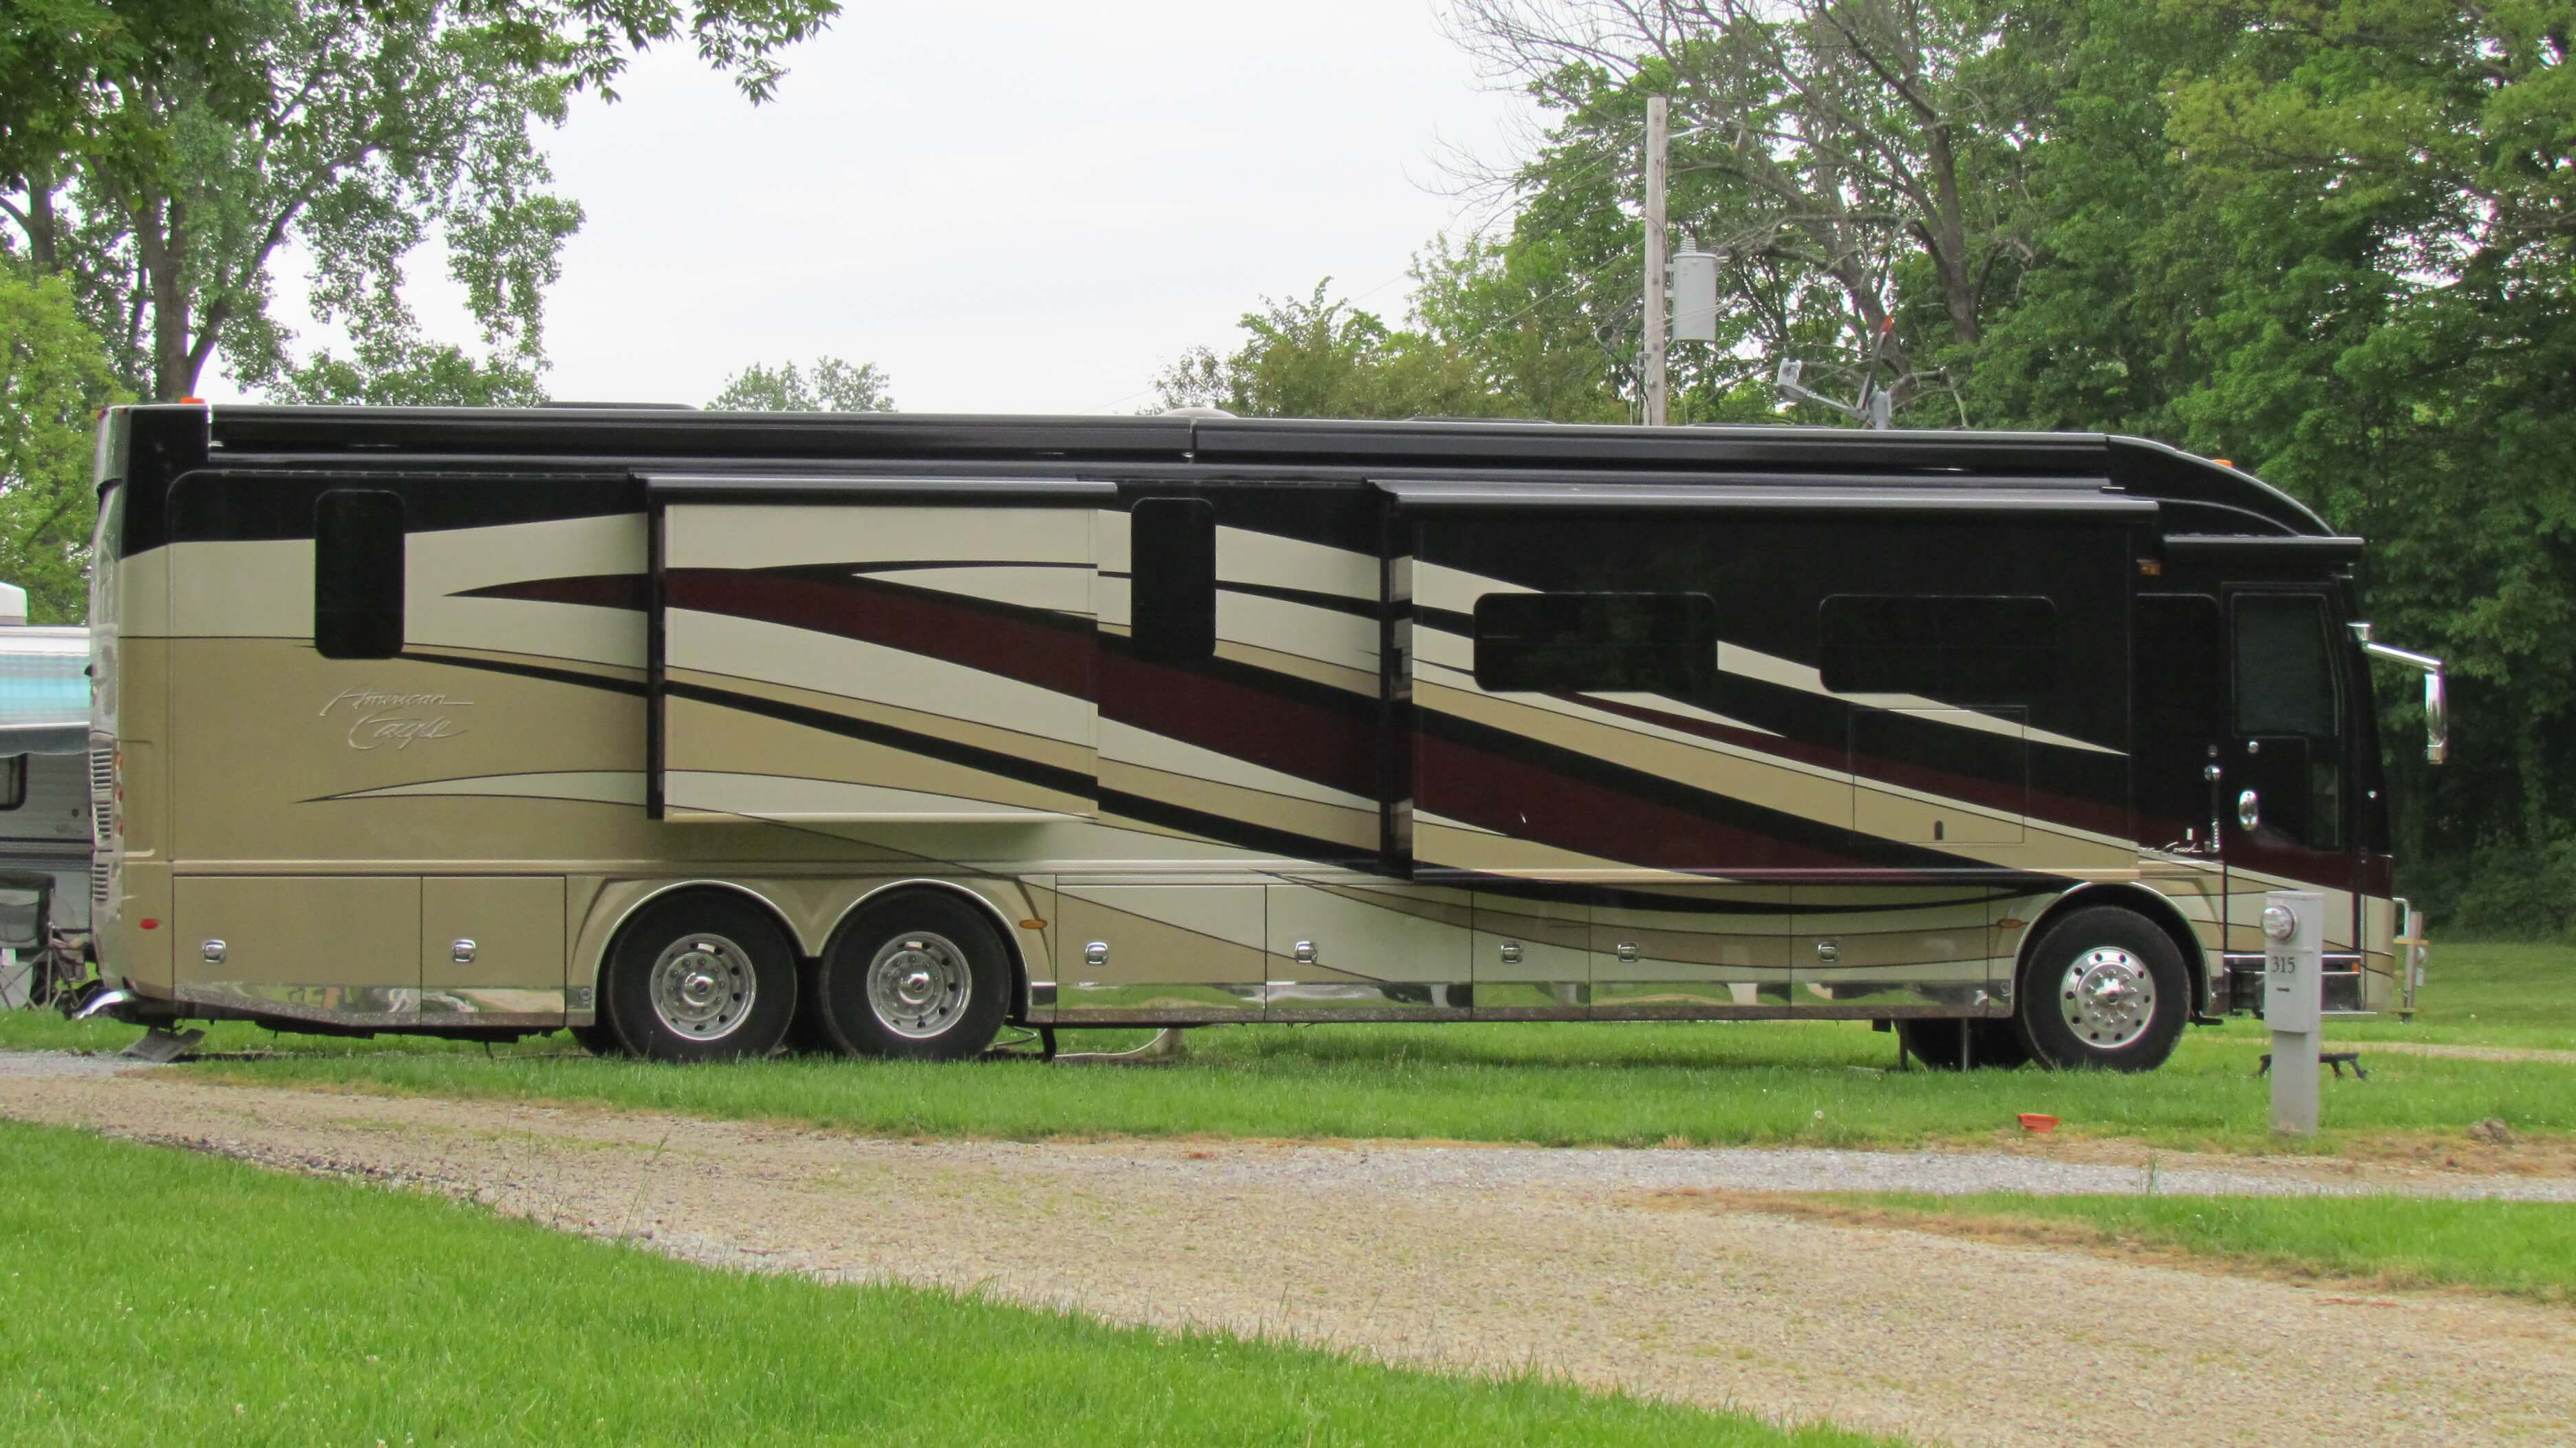 Kamp Modoc Family Campground Availability Bookyoursite 50 Amp Service For Rv Large Pull Thru